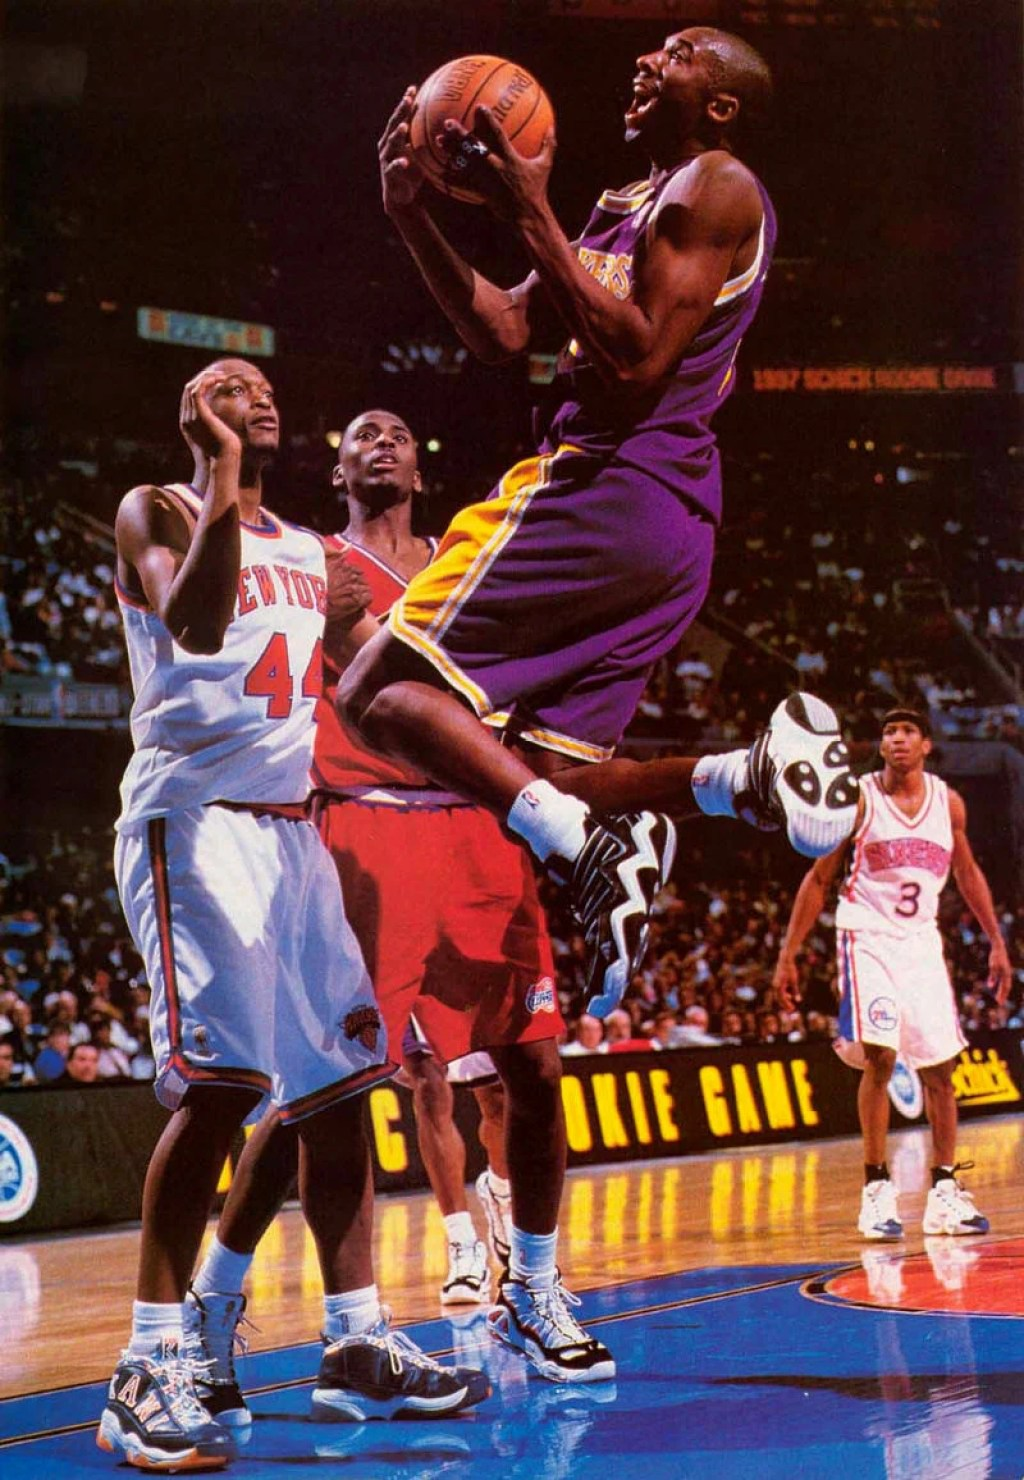 #KobeDay // 8 adidas Kobe Kicks We Want Retroed | Nice Kicks